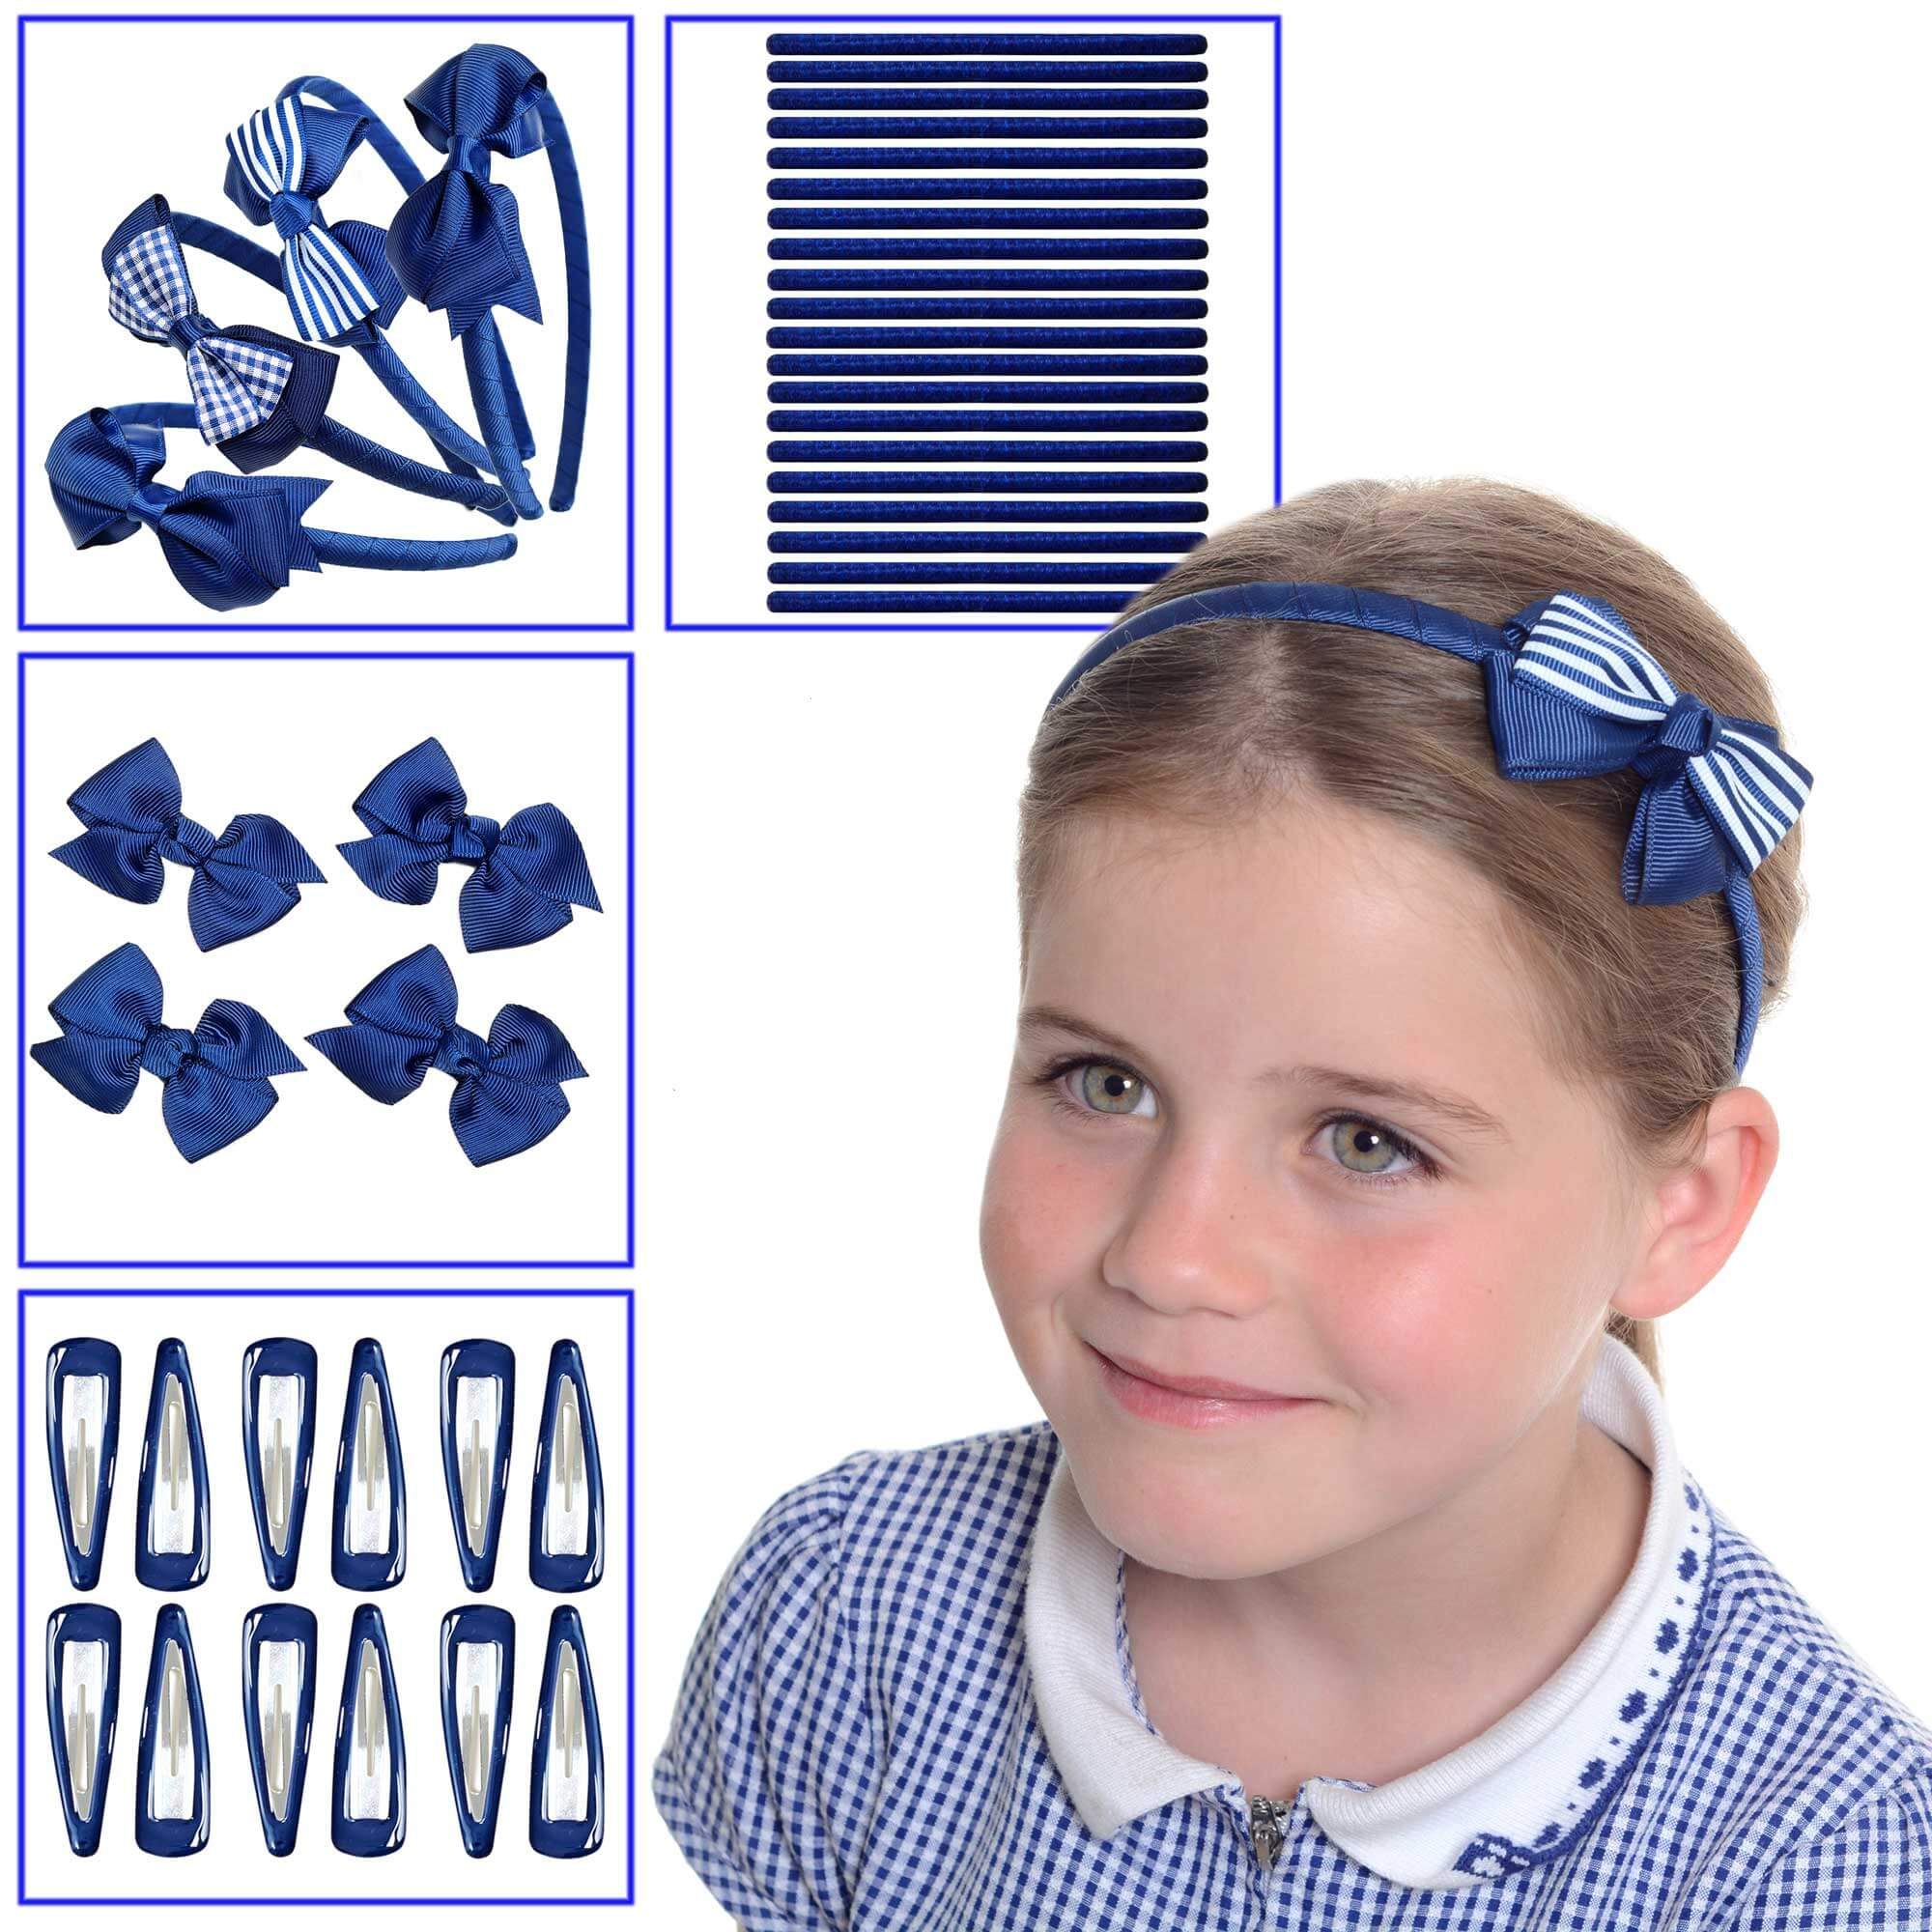 Navy blue school hair accessories, School uniform hair accessories